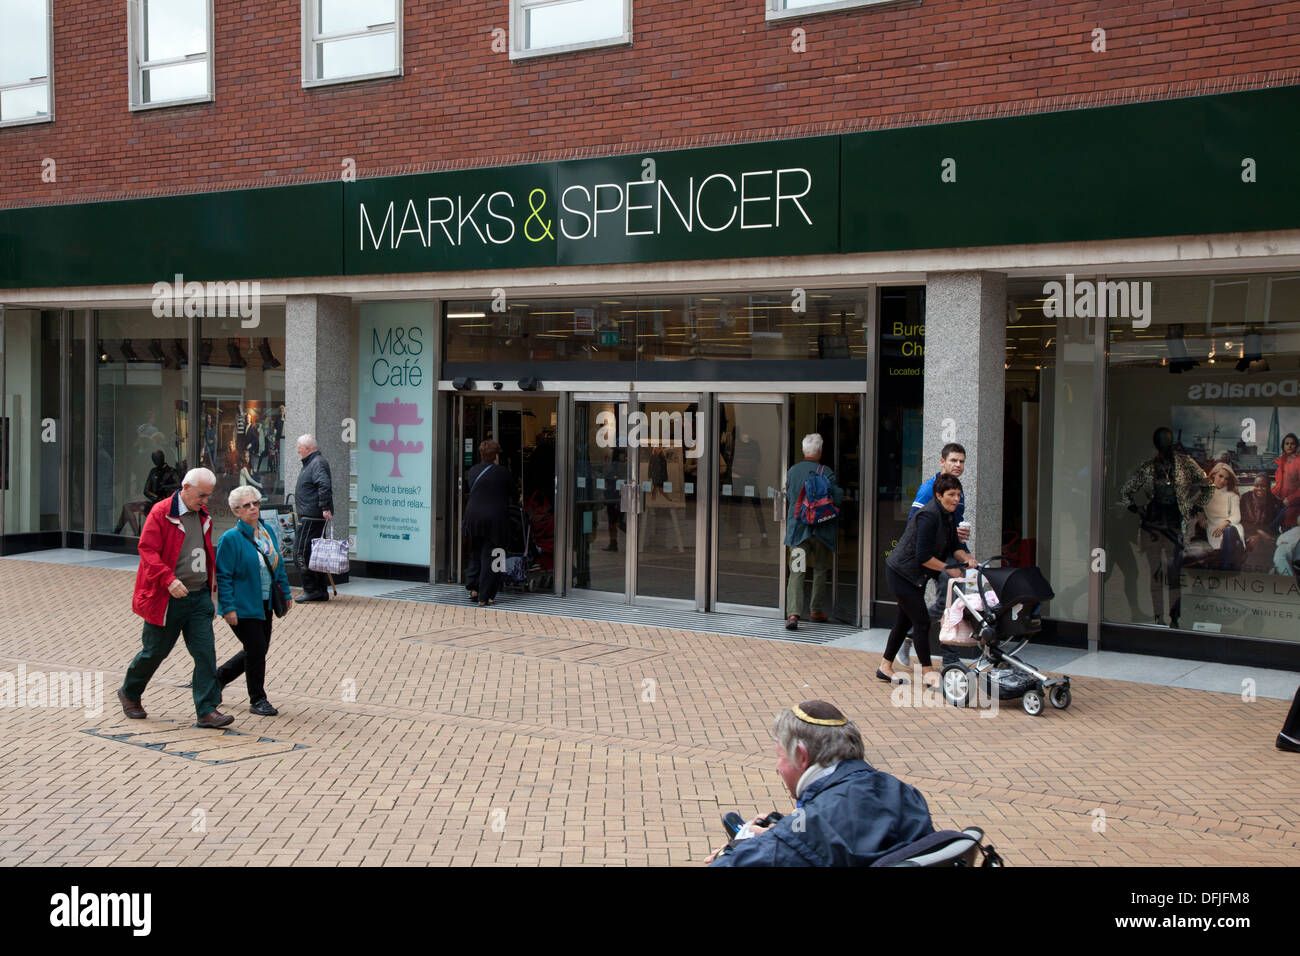 Marks and Spencer Chelmsford High Street. A high street with good accessibility for wheelchairs and strollers Stock Photo